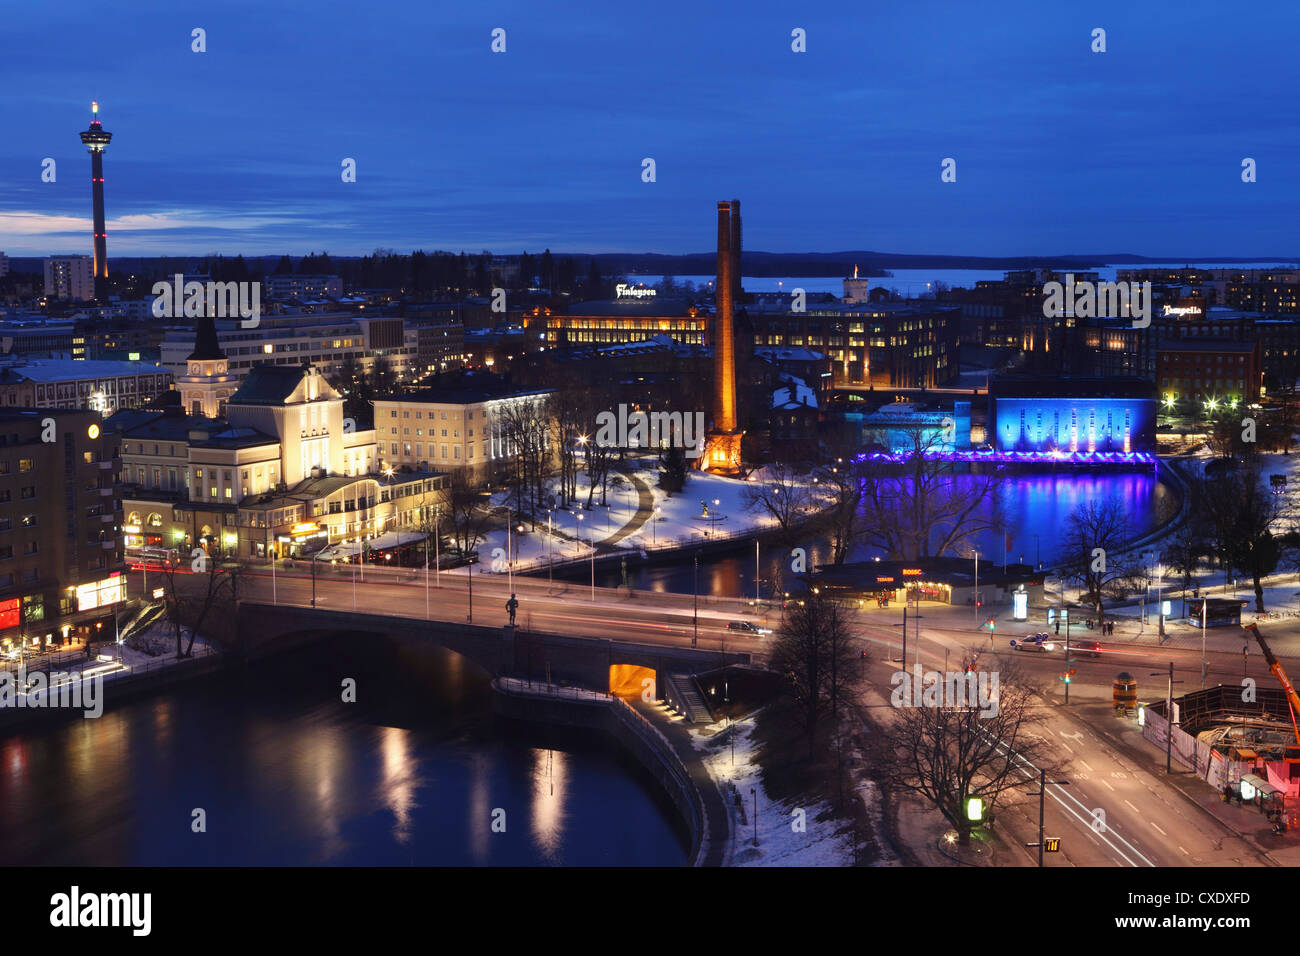 River Tammerkoski runs through the city centre, past the Finlayson Complex, night time in Tampere, Pirkanmaa, Finland - Stock Image